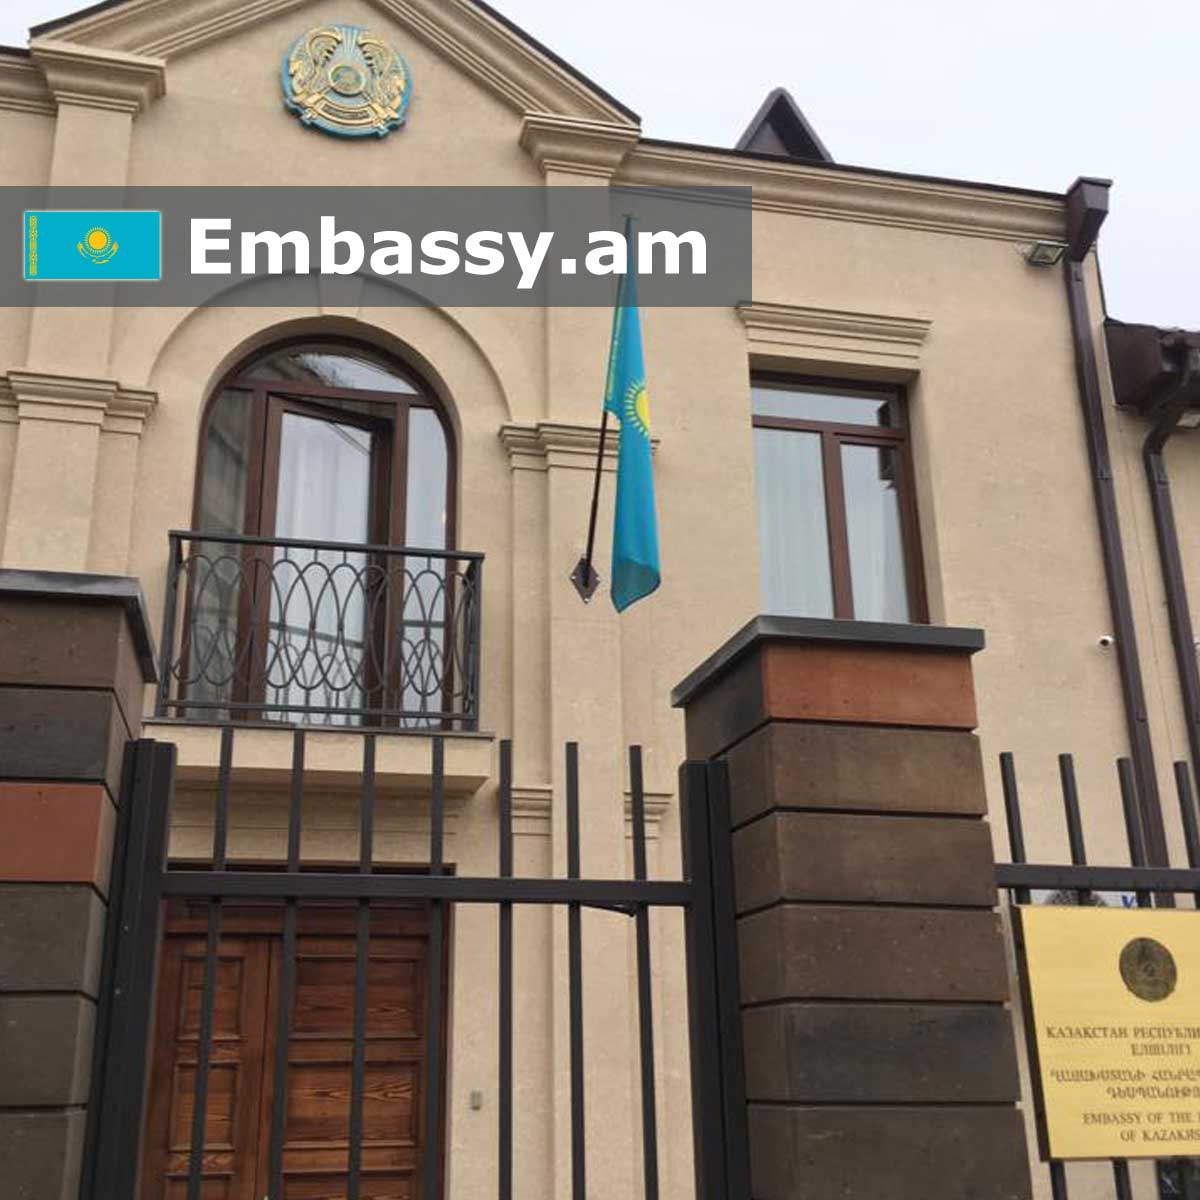 Embassy of Kazakhstan in Armenia: www.embassy.am